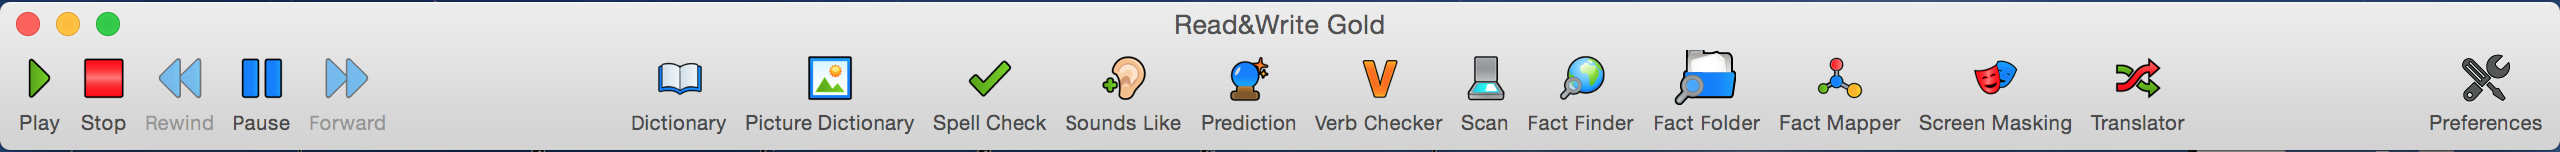 Read&Write Gold Writing Toolbar for Mac